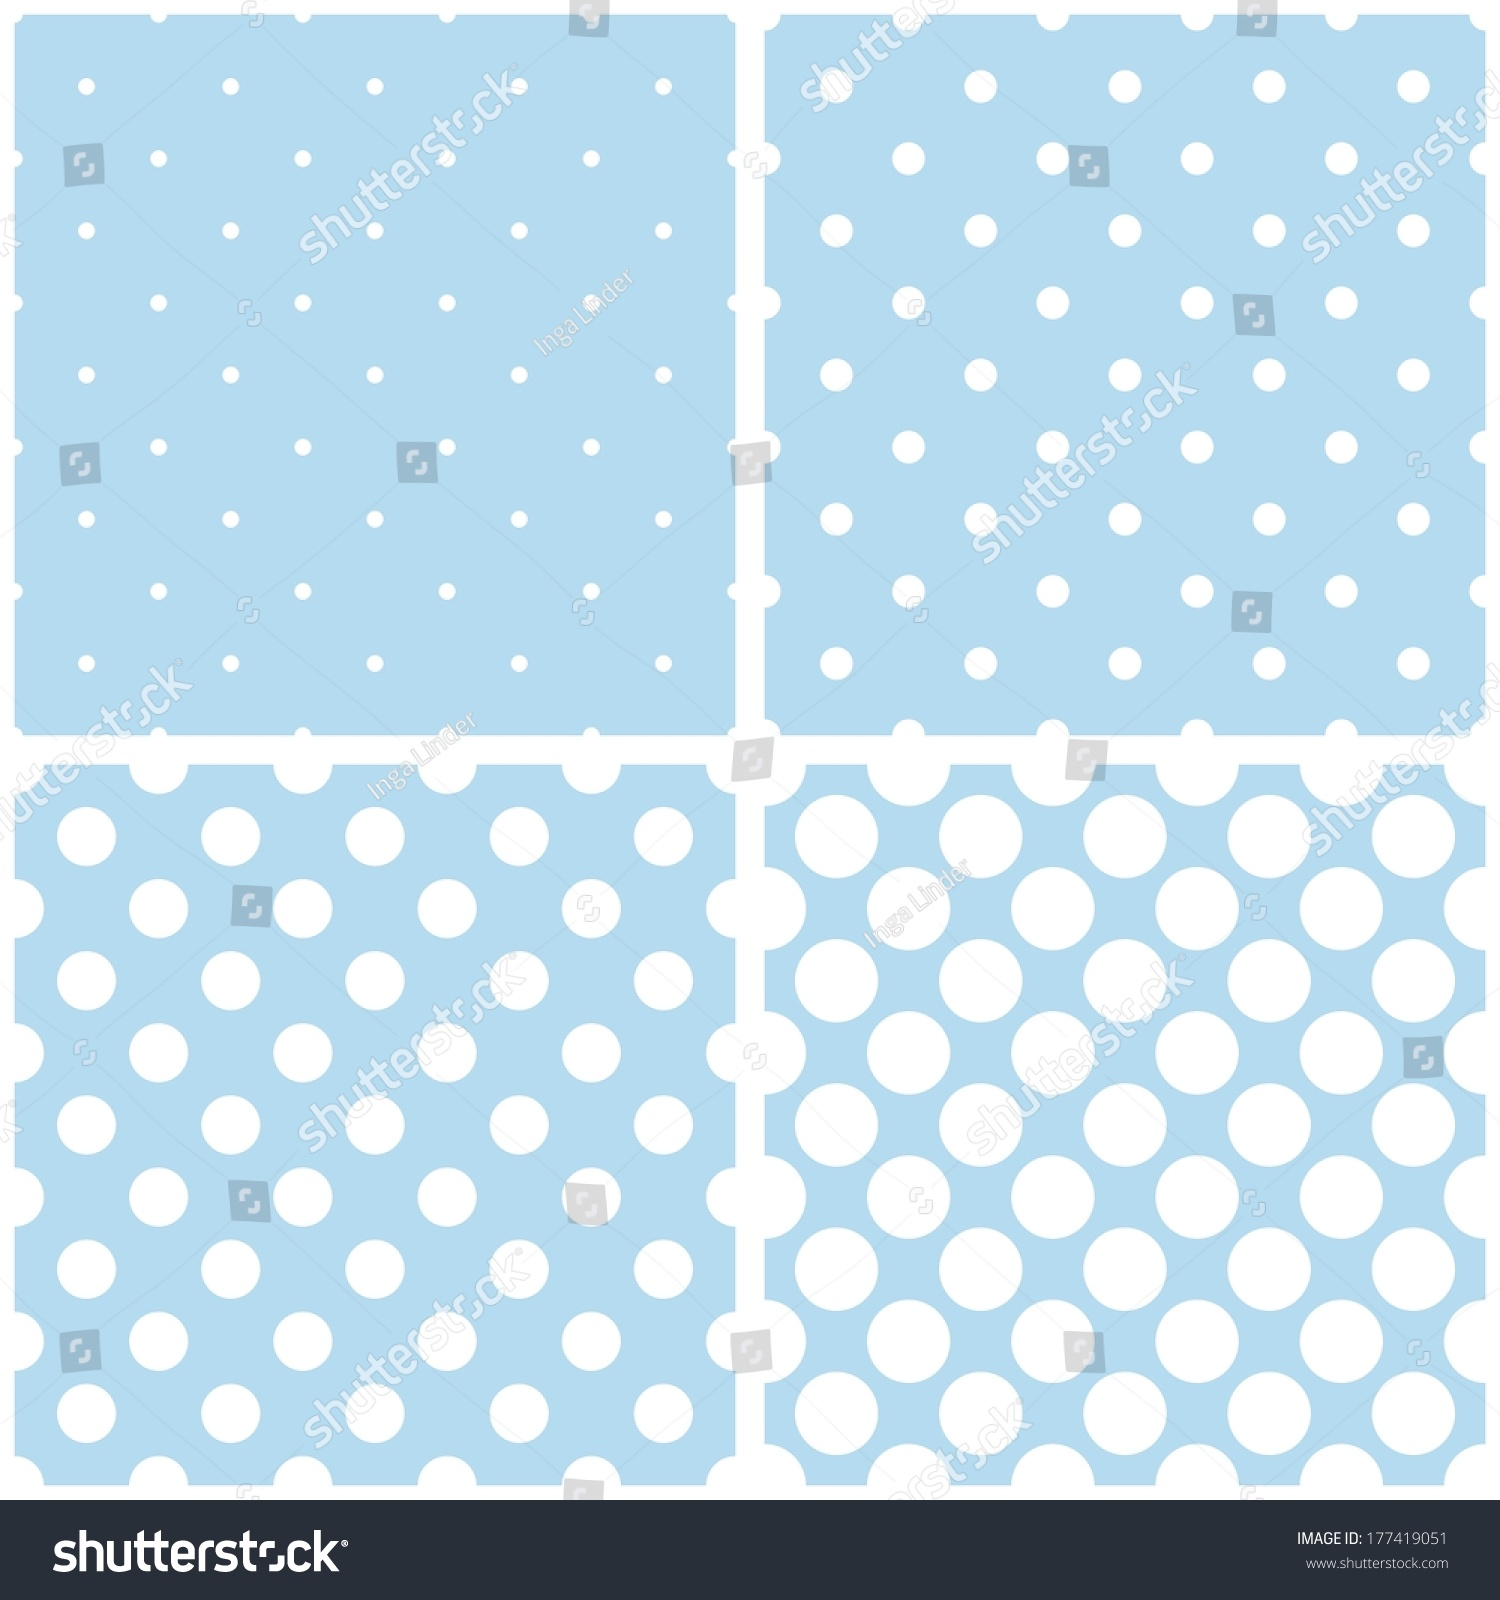 Polka Dots Vectors Photos and PSD files  Free Download